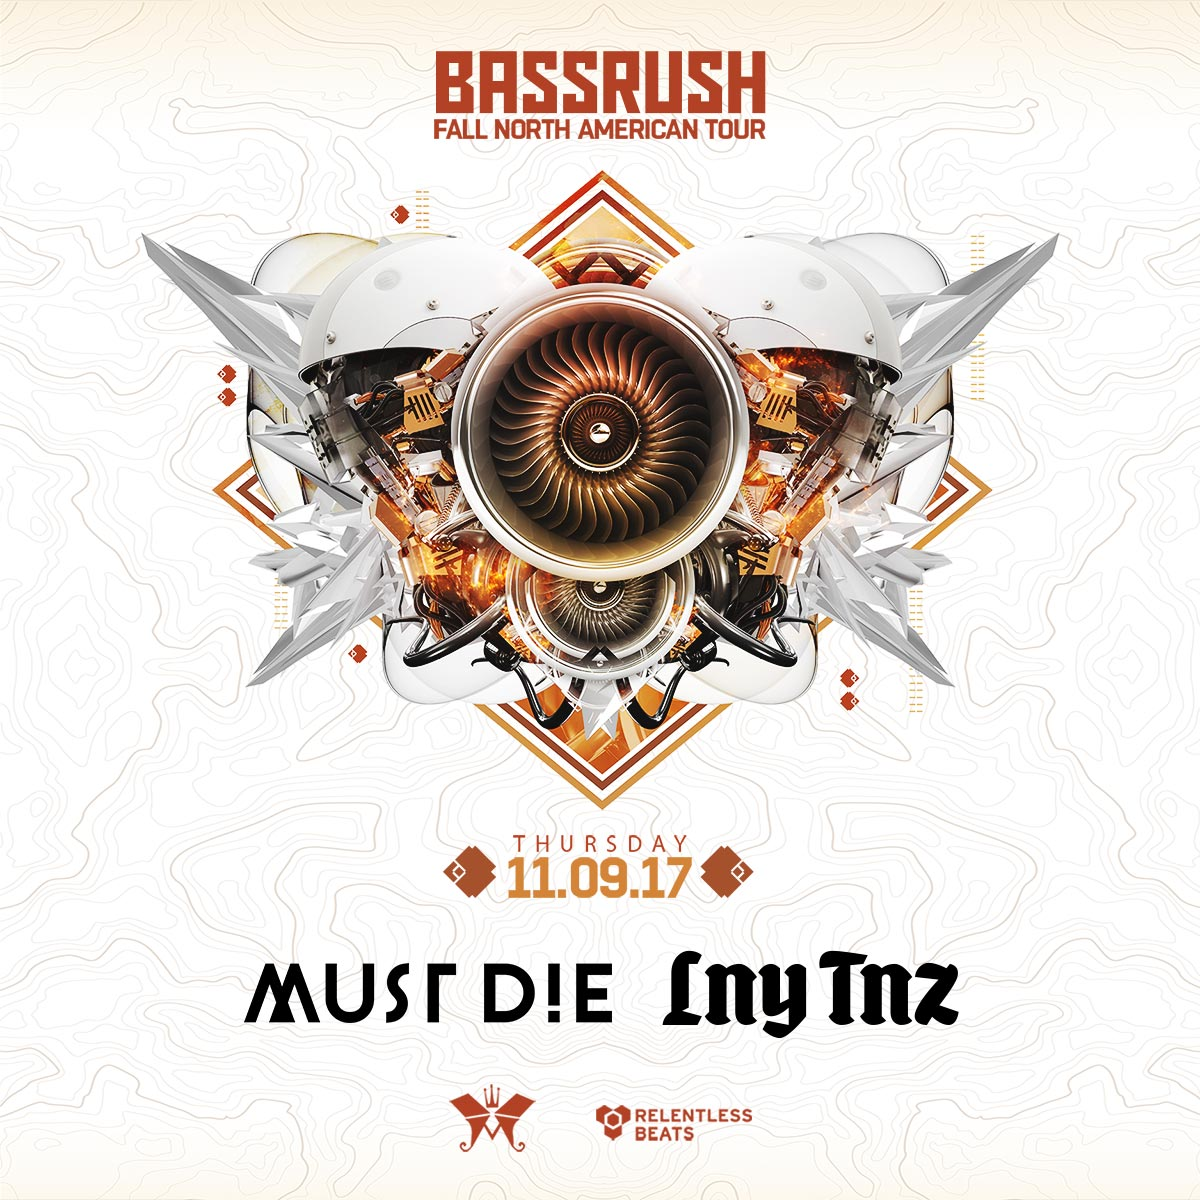 Flyer for Must Die! + LNY TNZ - Bassrush Fall North American Tour